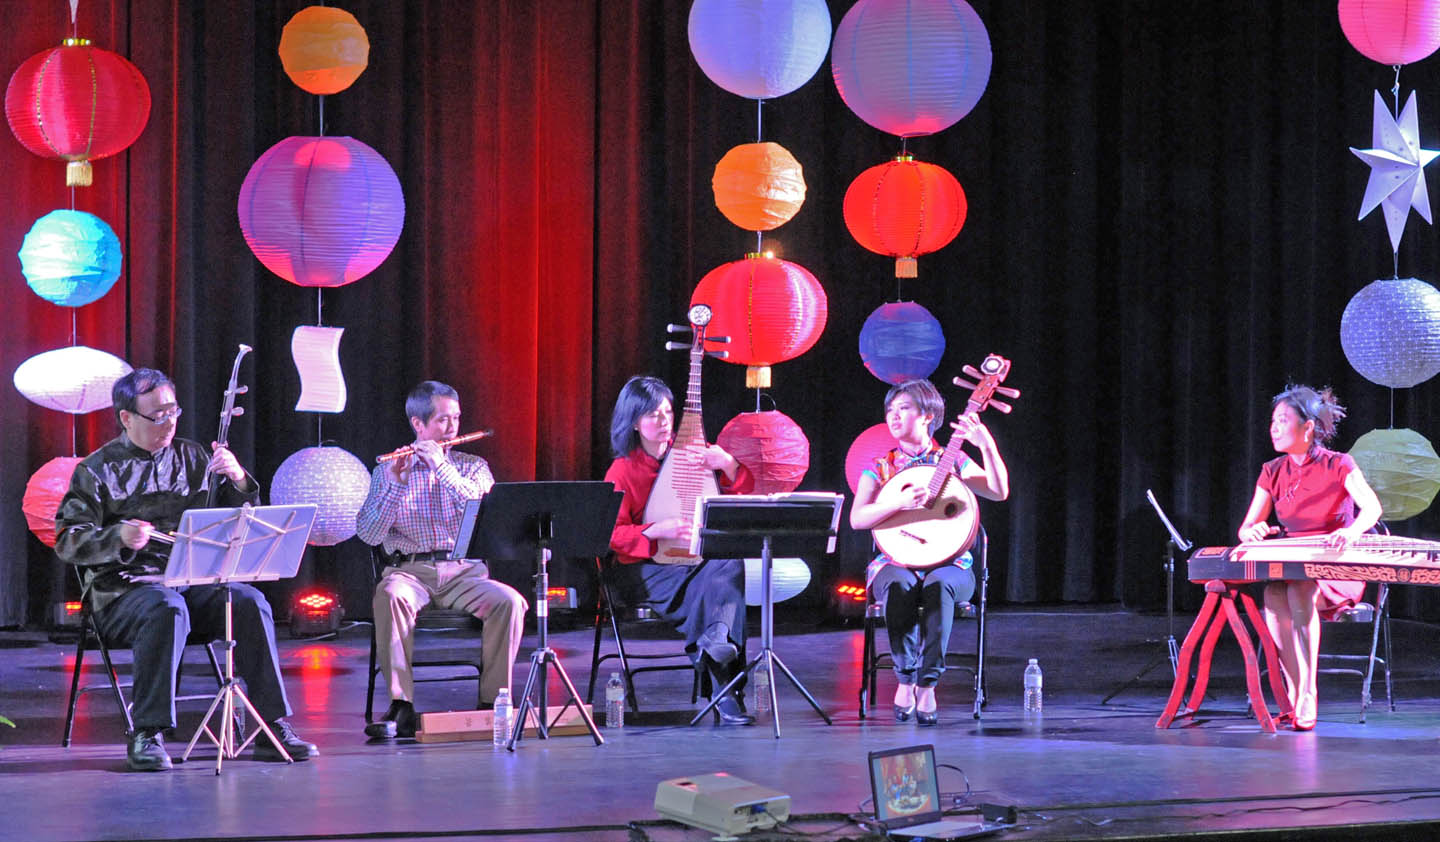 CCCC, Chinese ensemble celebrate Lantern Festival